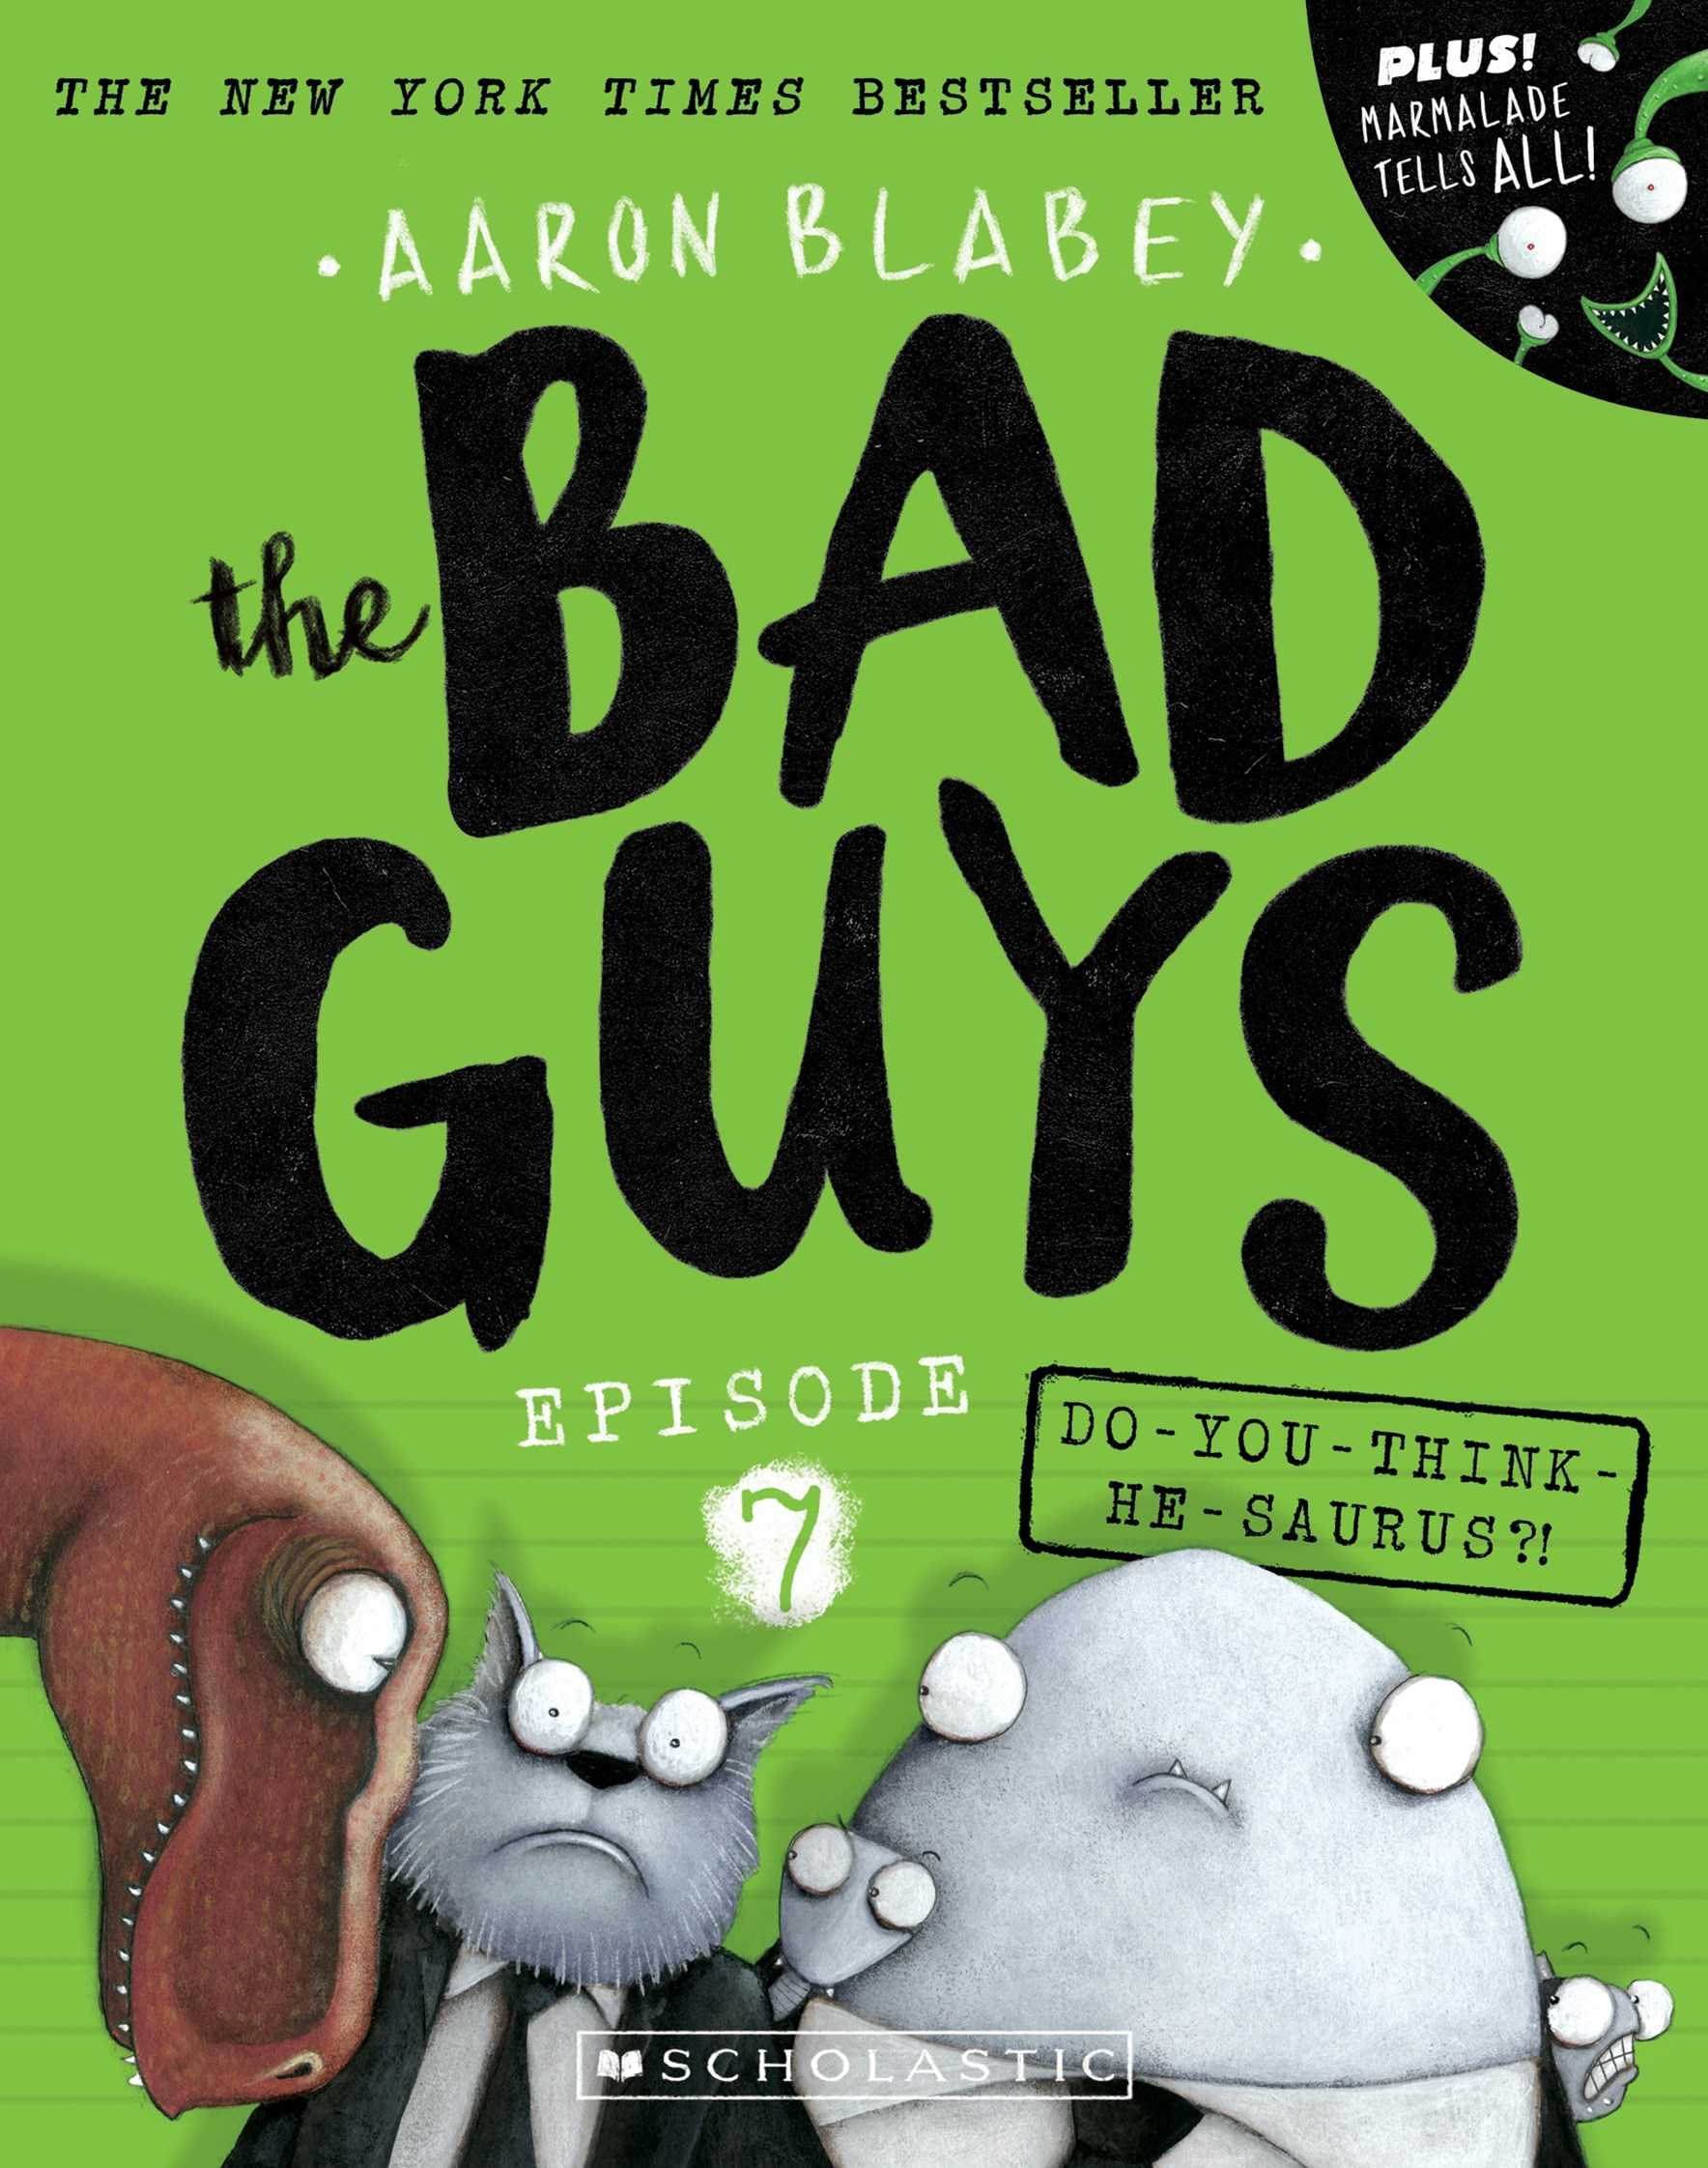 Bad Guys Episode 7: Do you think he saurus?!   | Tuggl